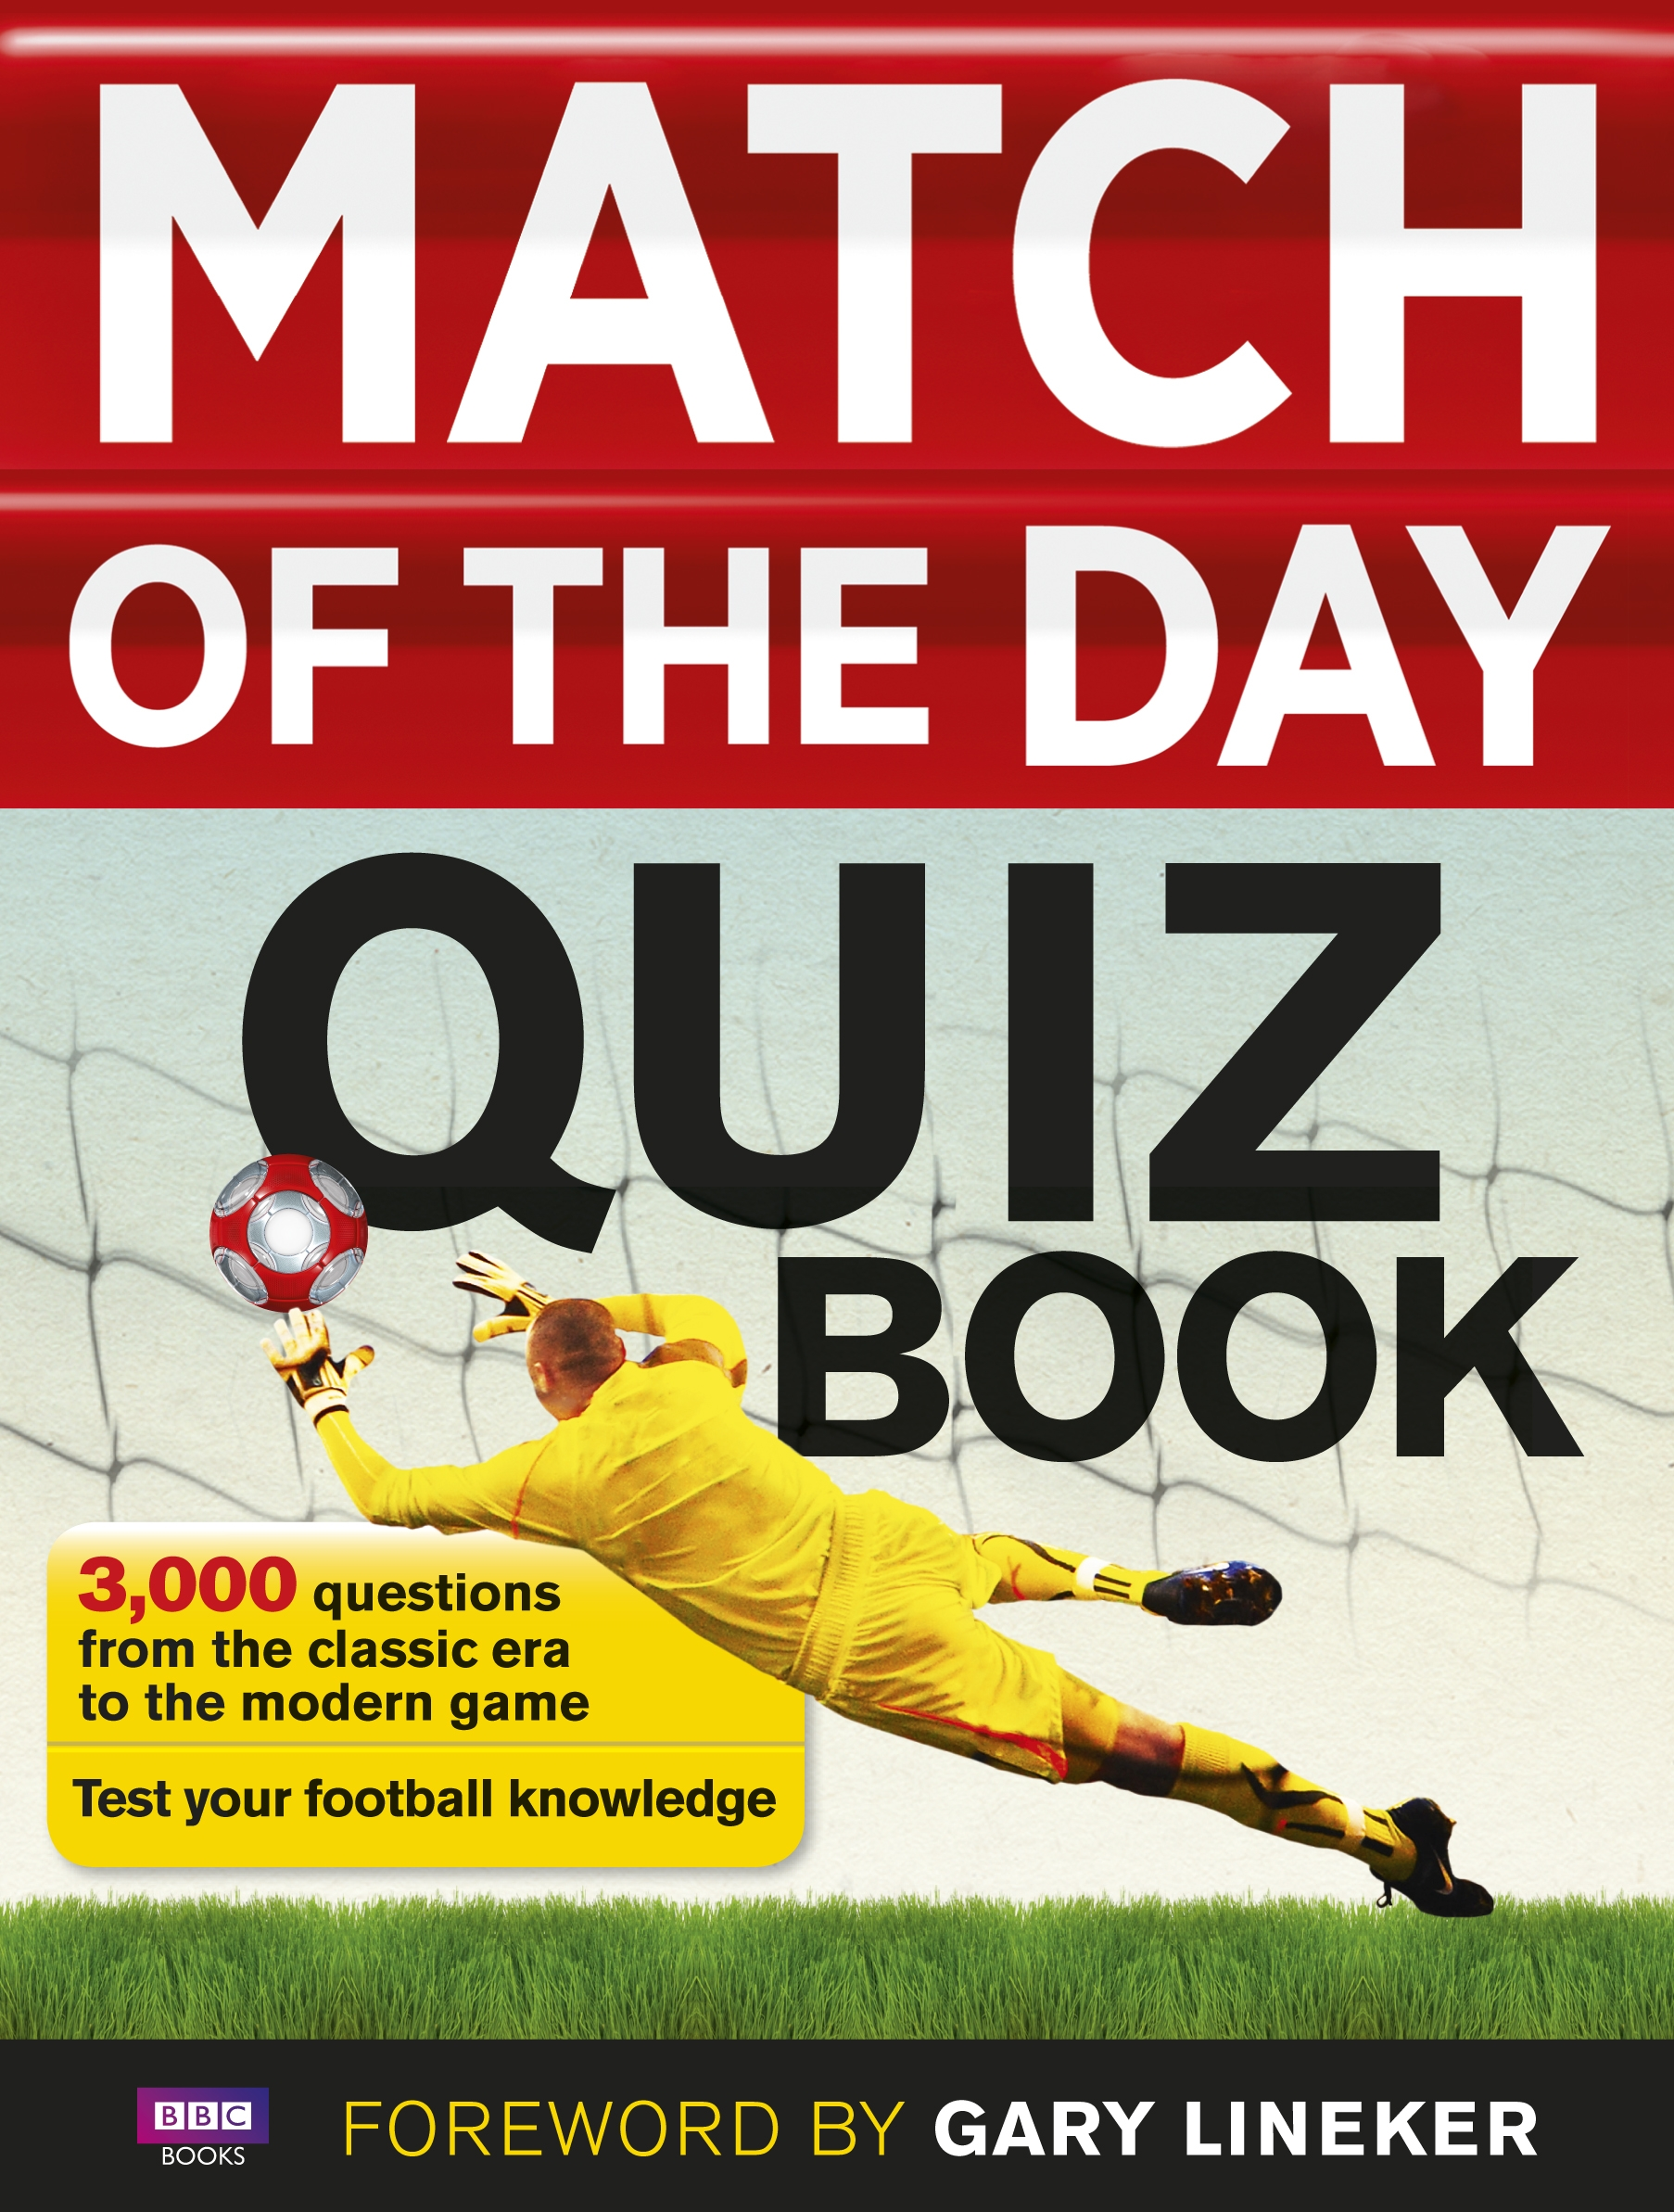 Penguin Book Cover Questions : Match of the day quiz book penguin books australia